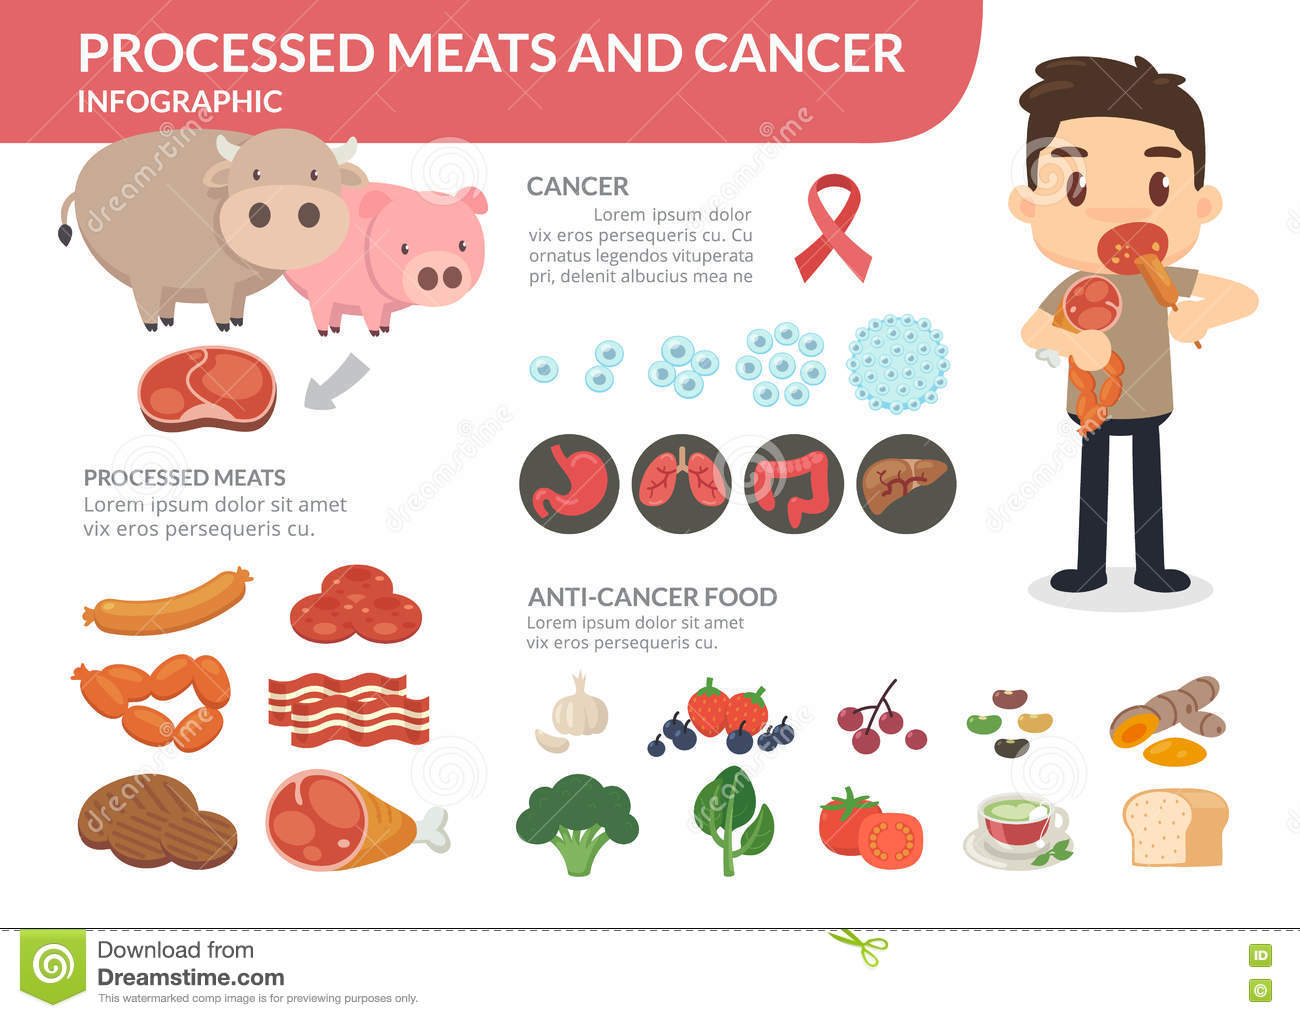 Processed Meats And Cancer  A Man Eating Processed Meats